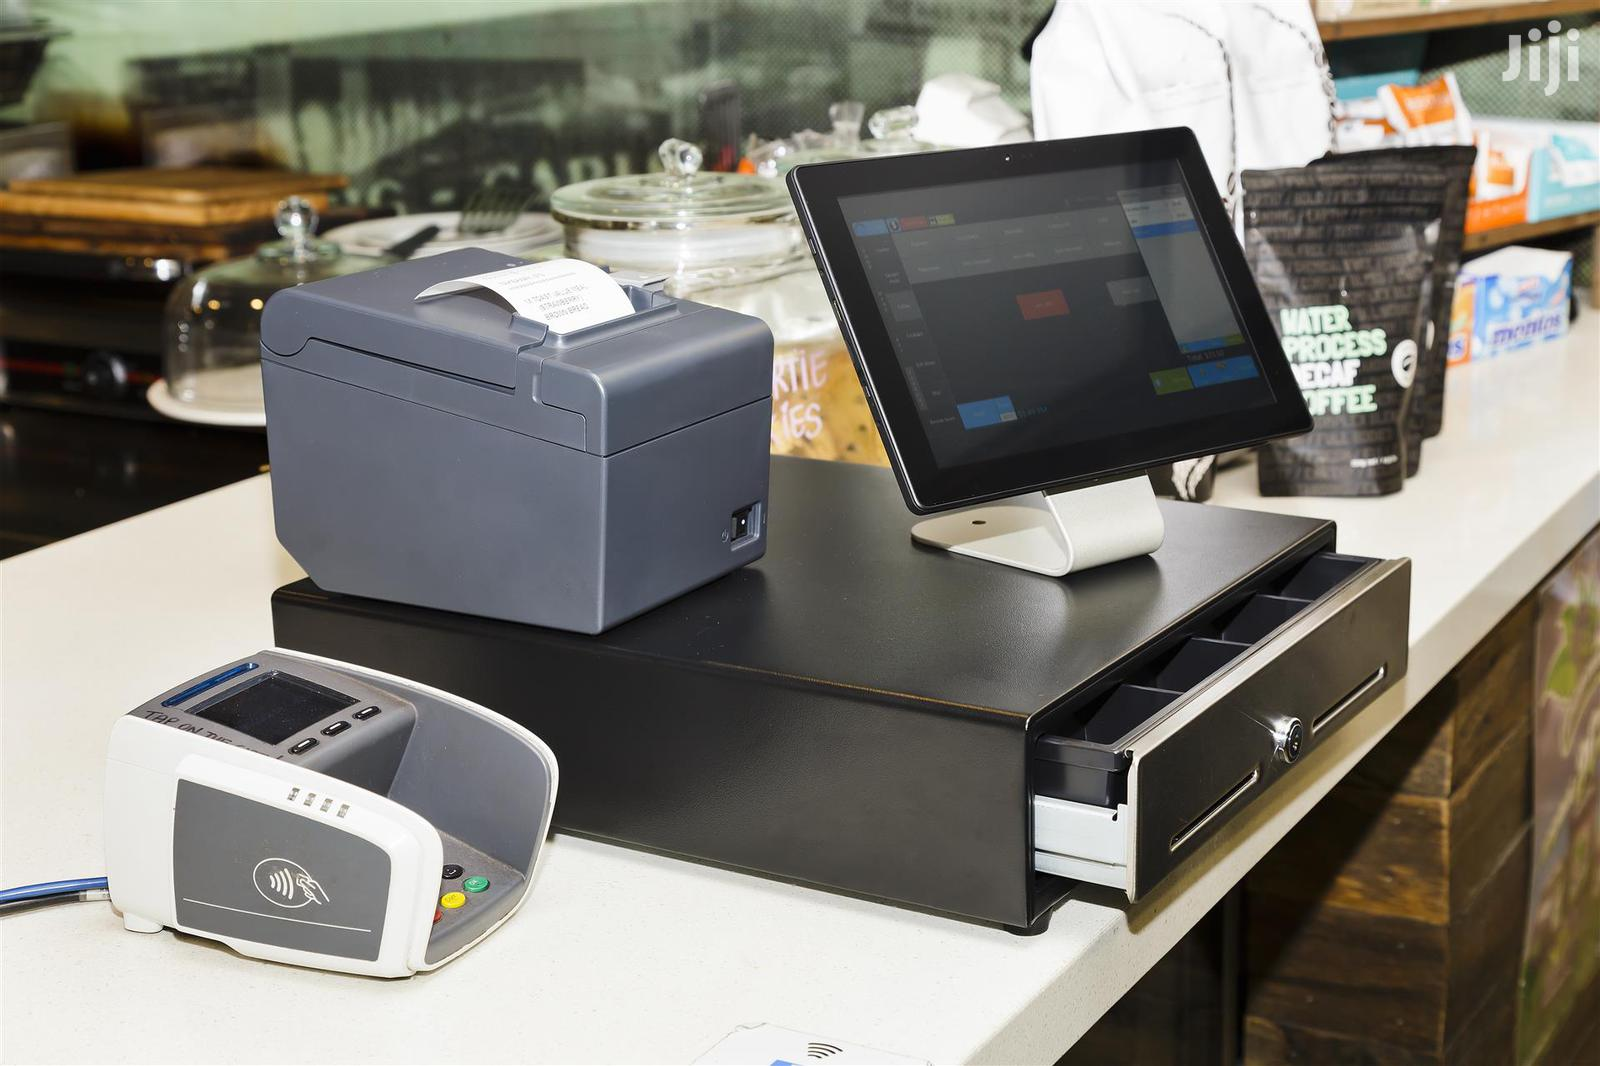 POS -advanced Point Of Sale System (POS)